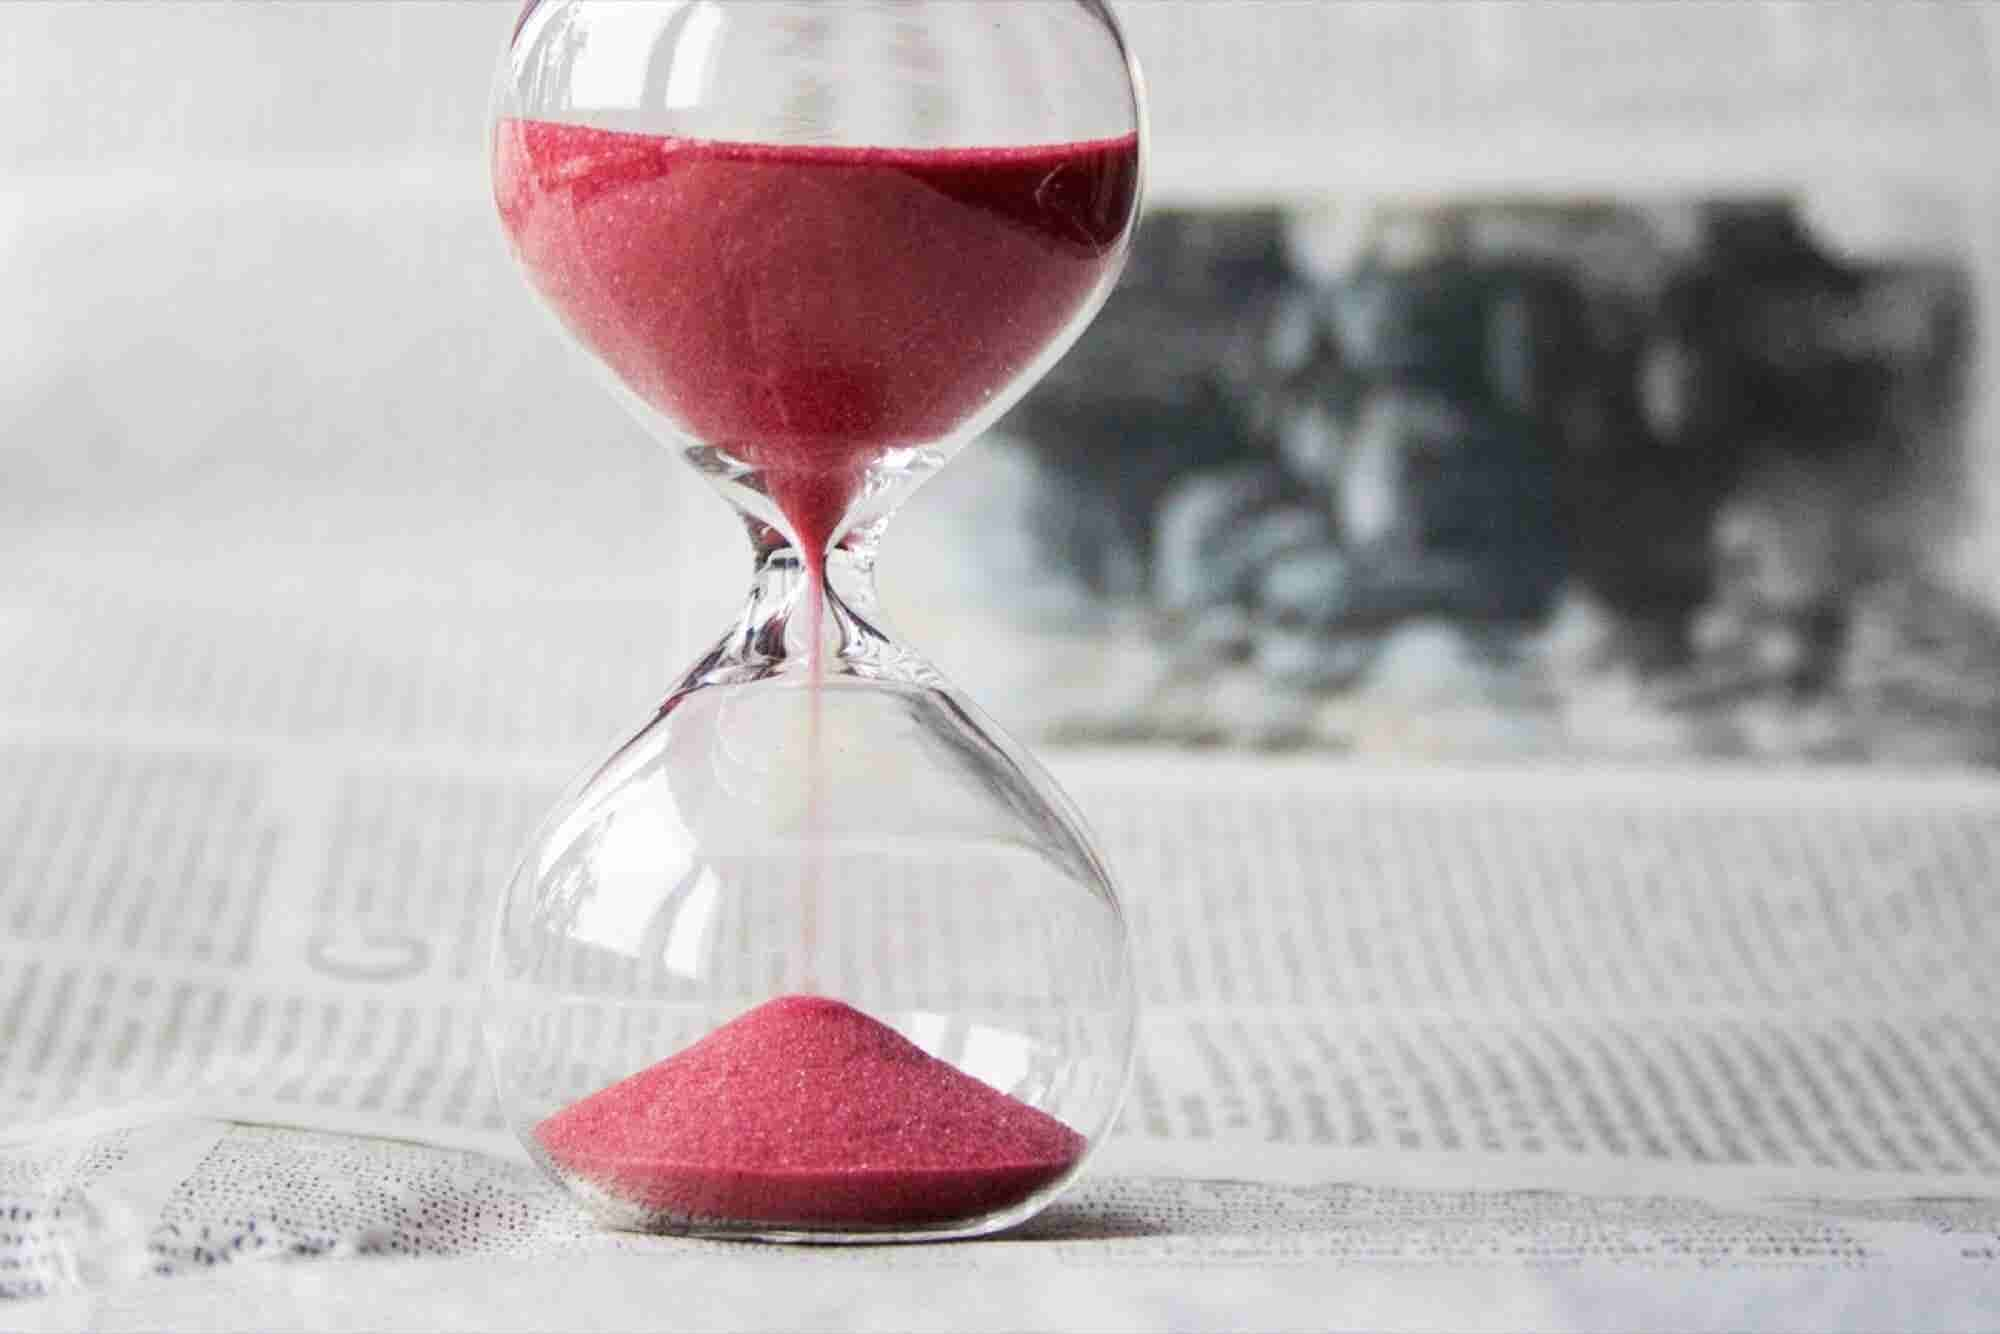 5 Ways You're Wasting Time Without Even Realizing It